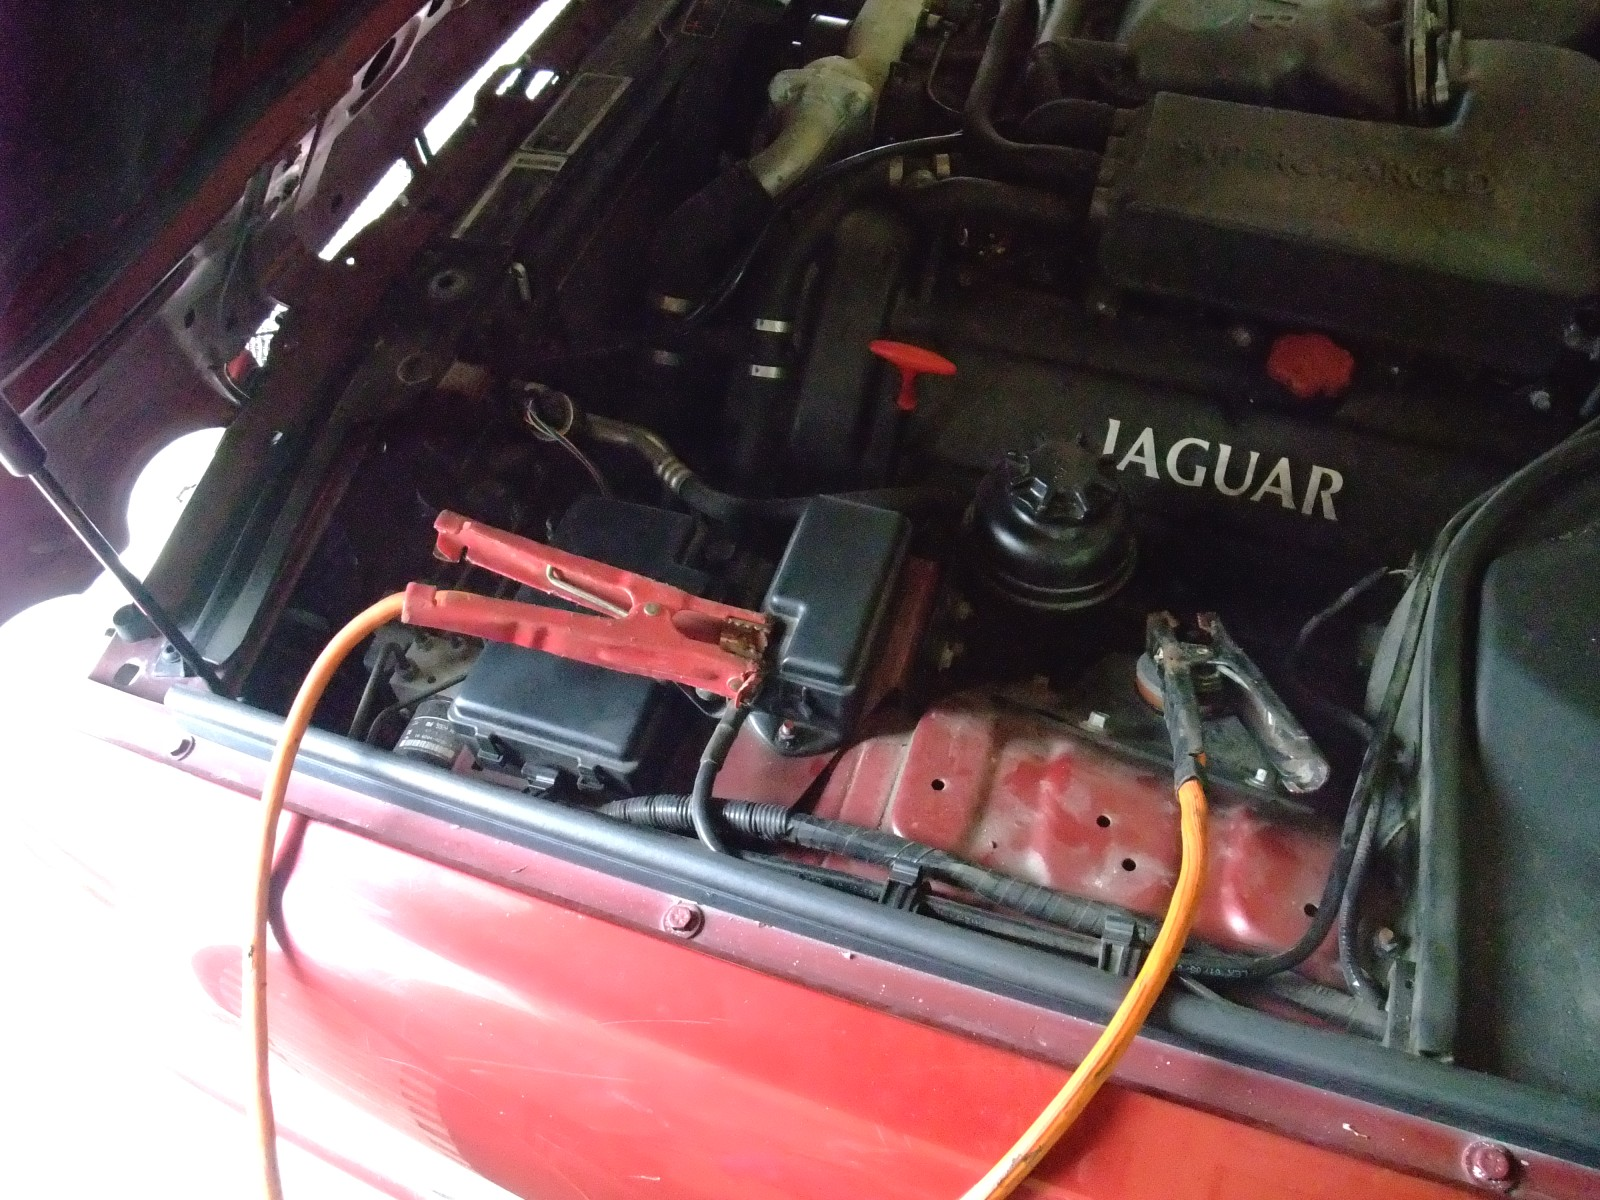 How to jump start a 1997 xjr when the trunk won't open